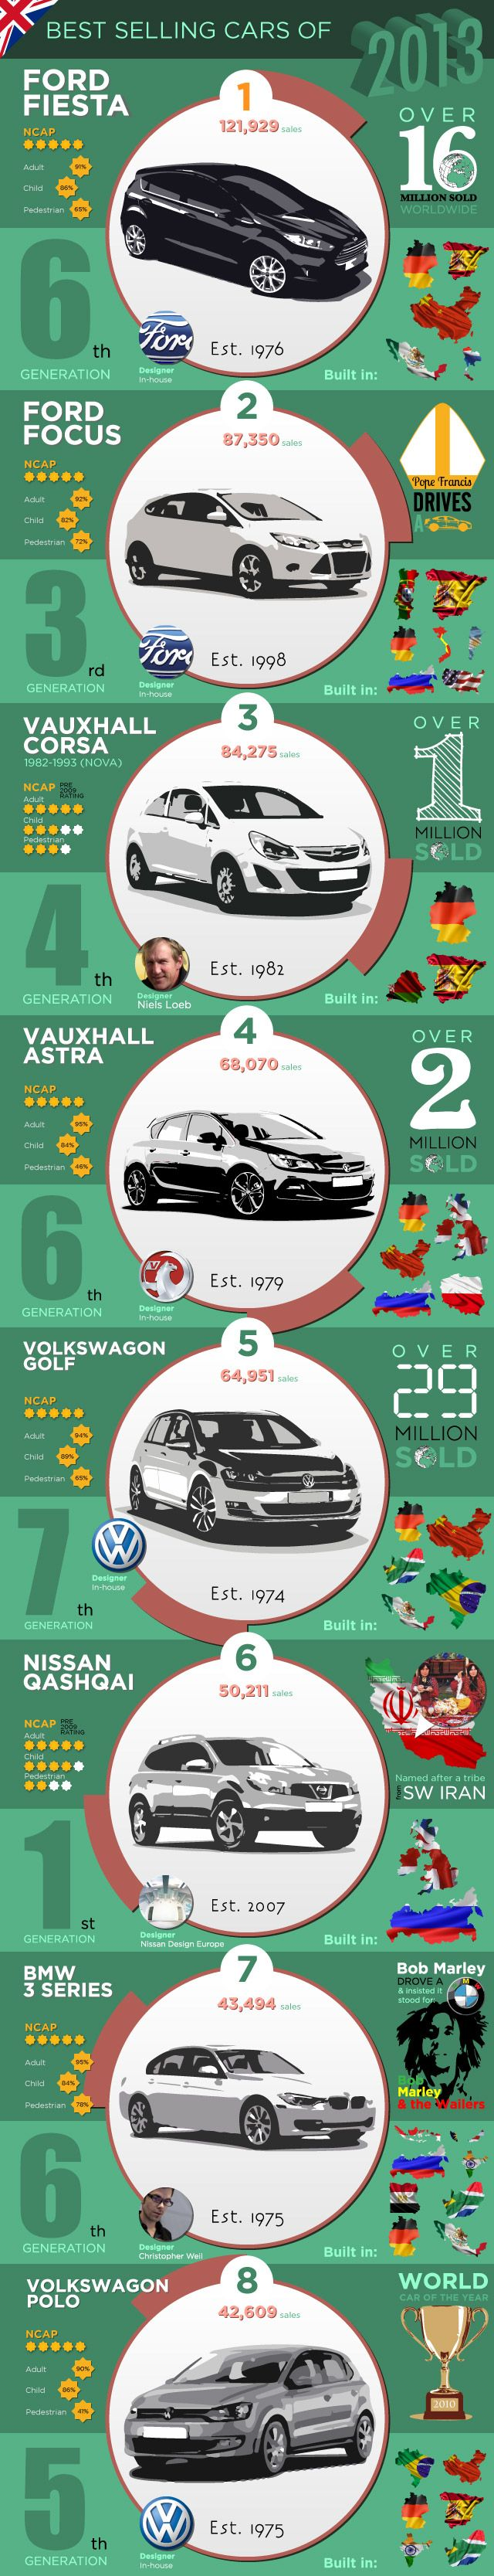 Infographic best selling cars in britain 2013 stoneacre blog automotive blog